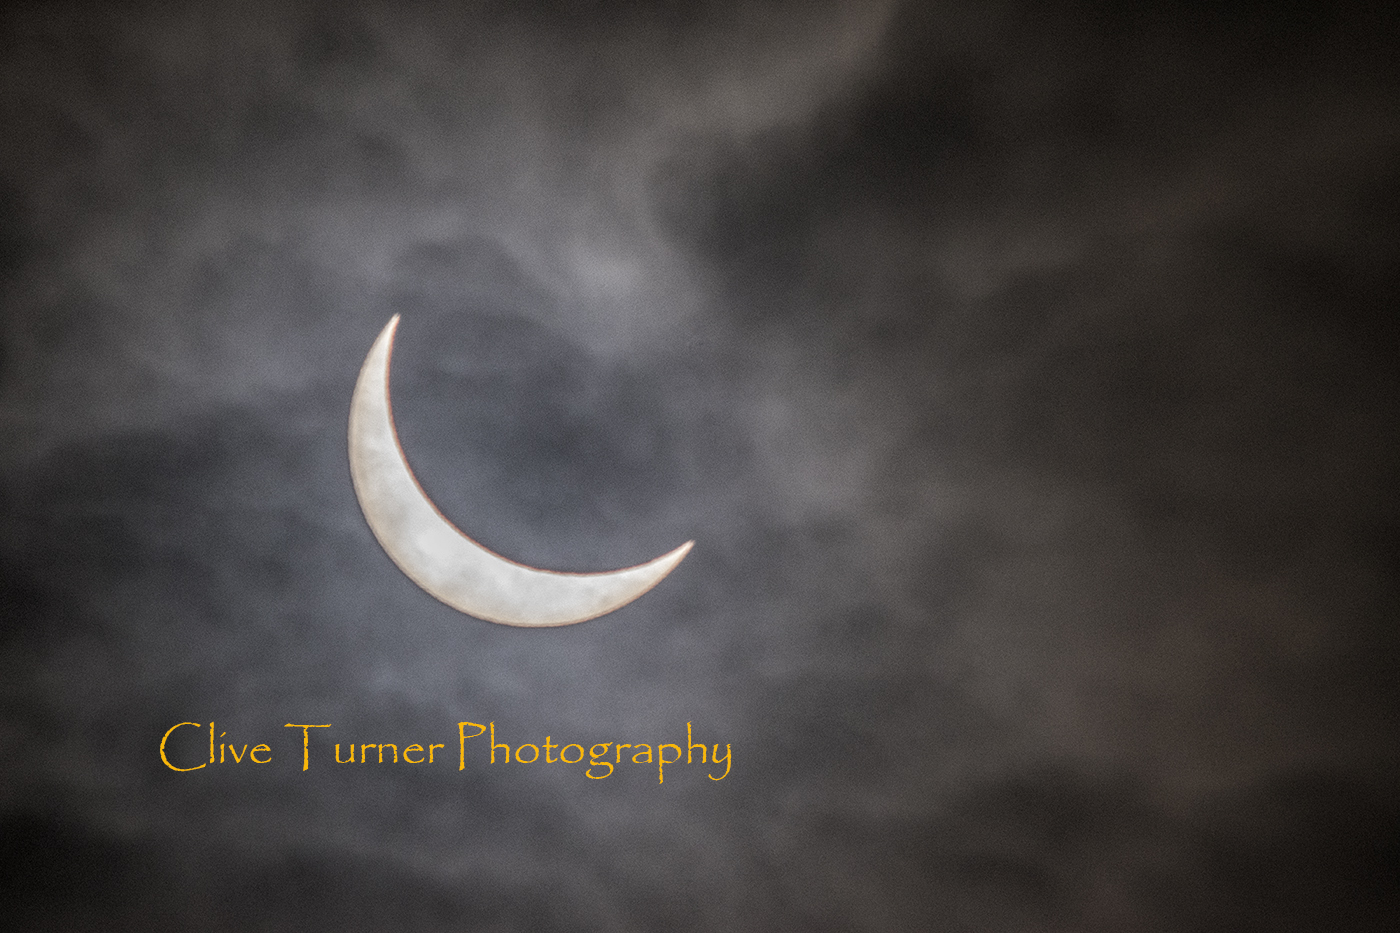 Solar Eclipse from Droitwich